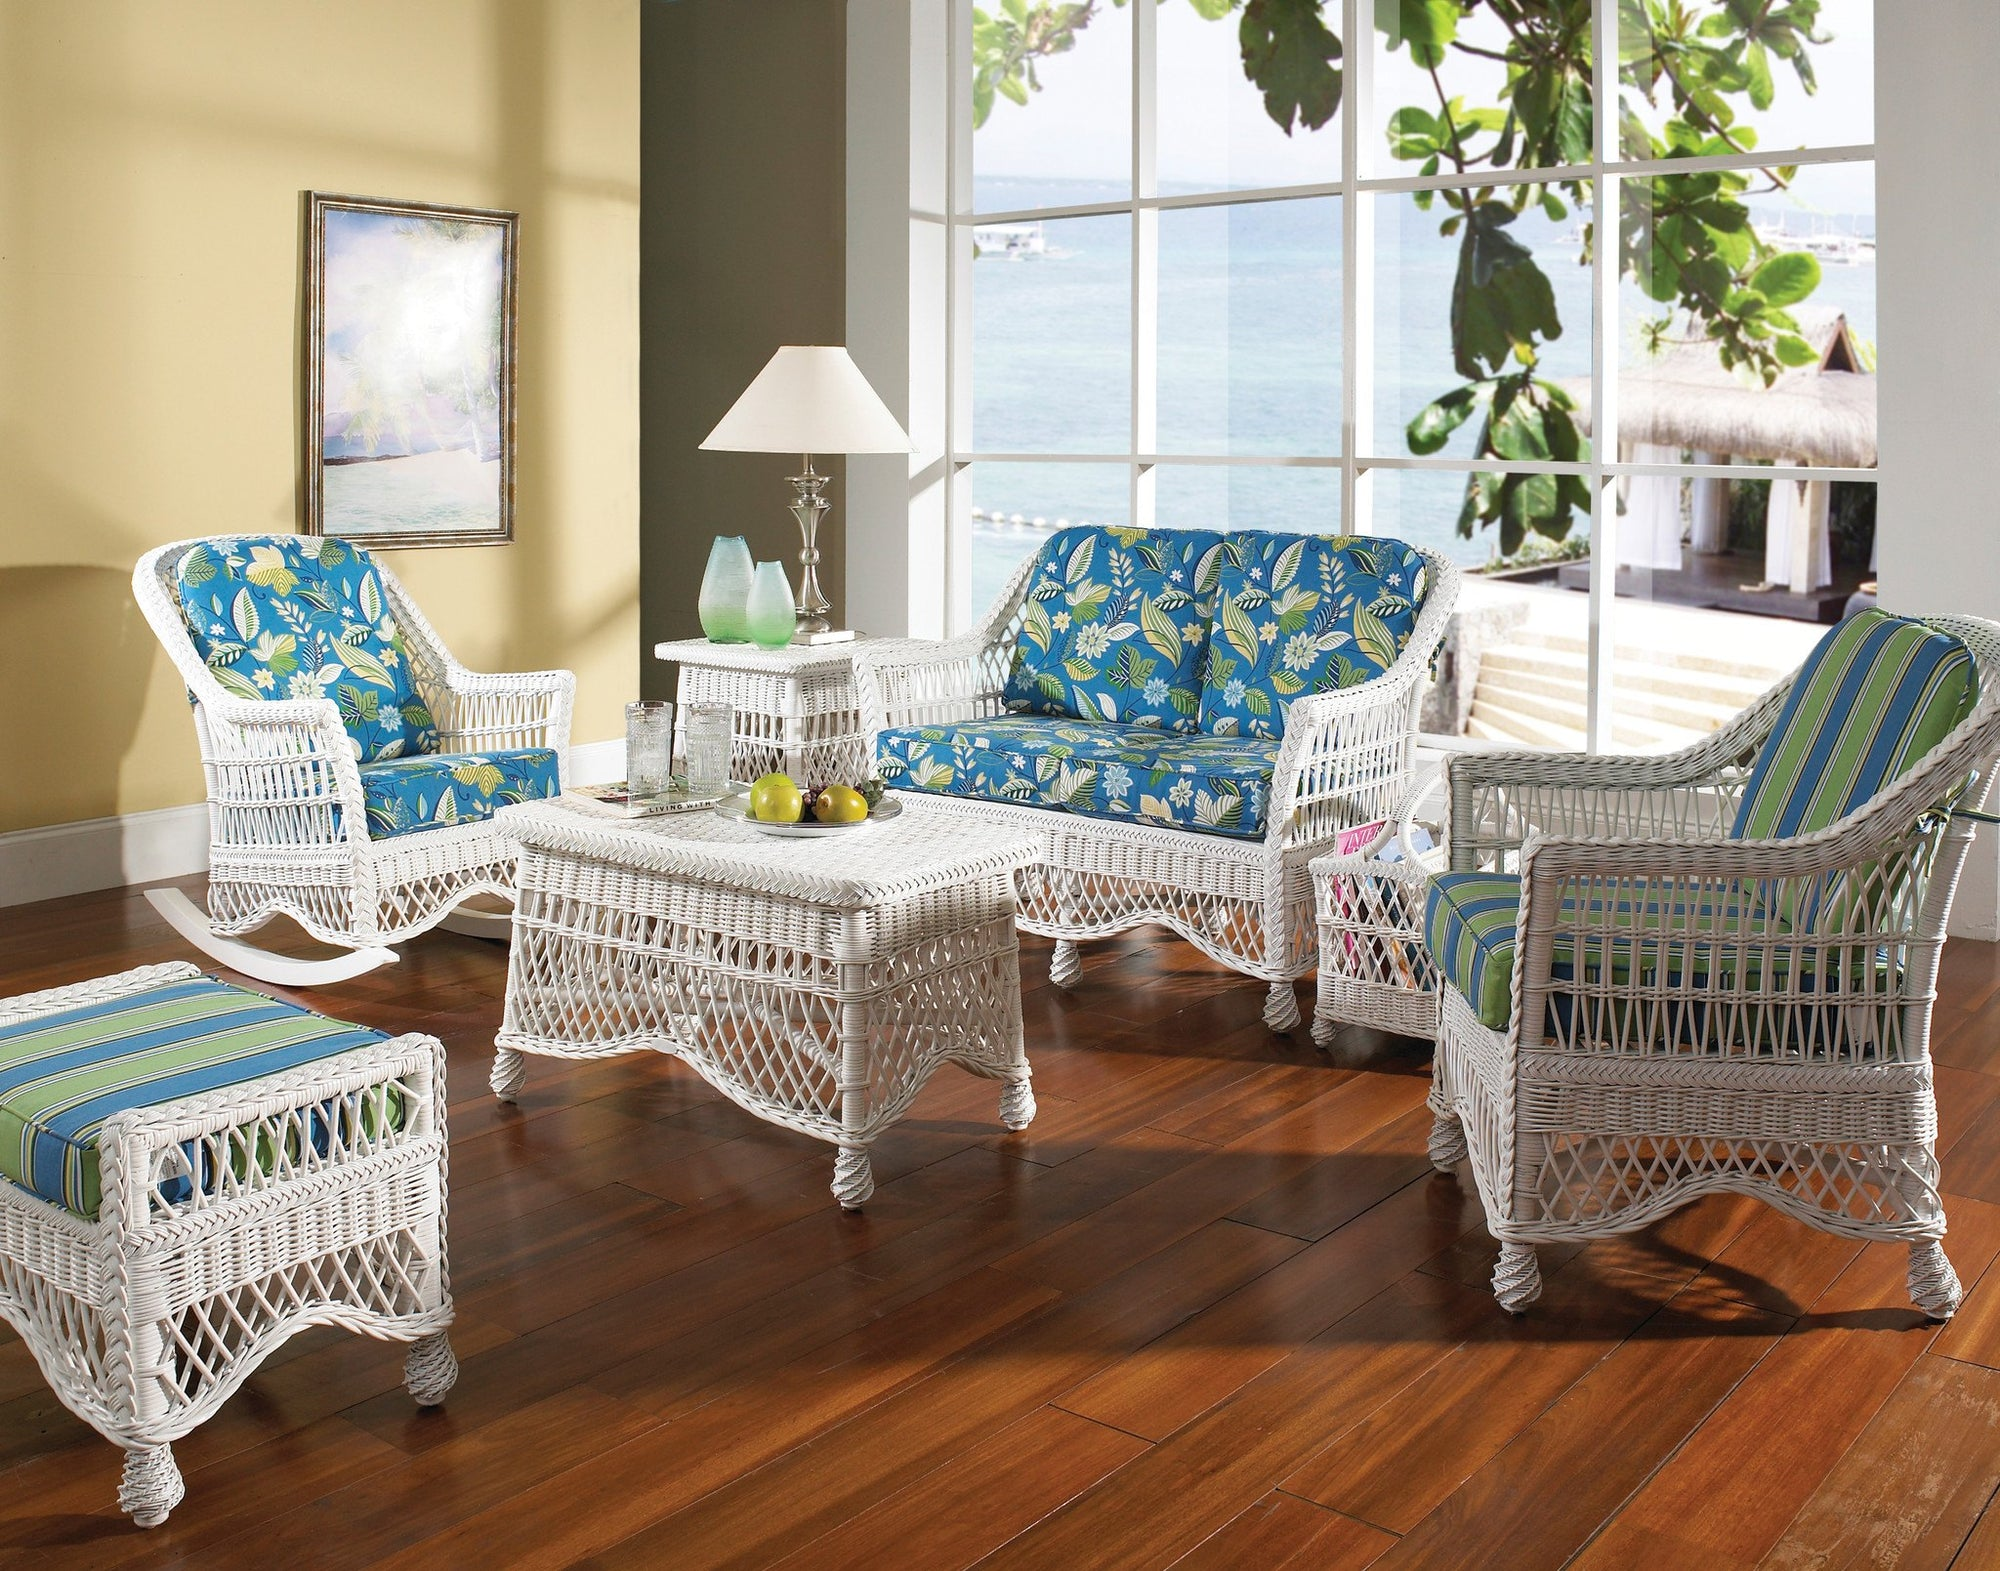 Designer Wicker & Rattan By Tribor Naples Ottoman by Designer Wicker from Tribor Ottoman - Rattan Imports